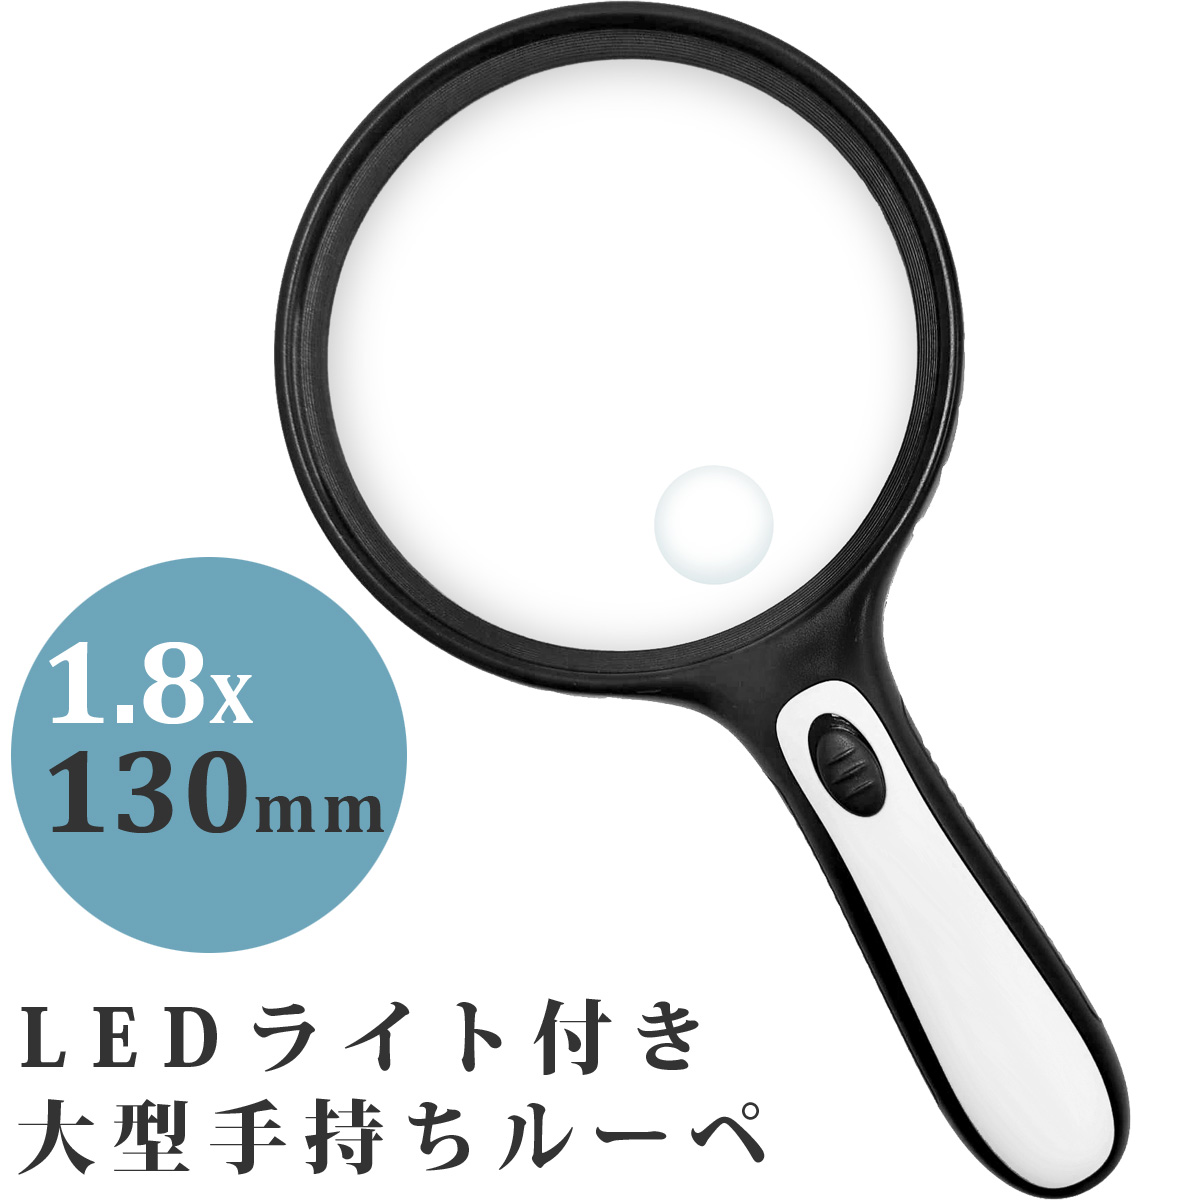 130mm Large Hand Magnifier with LED Light 1.8X